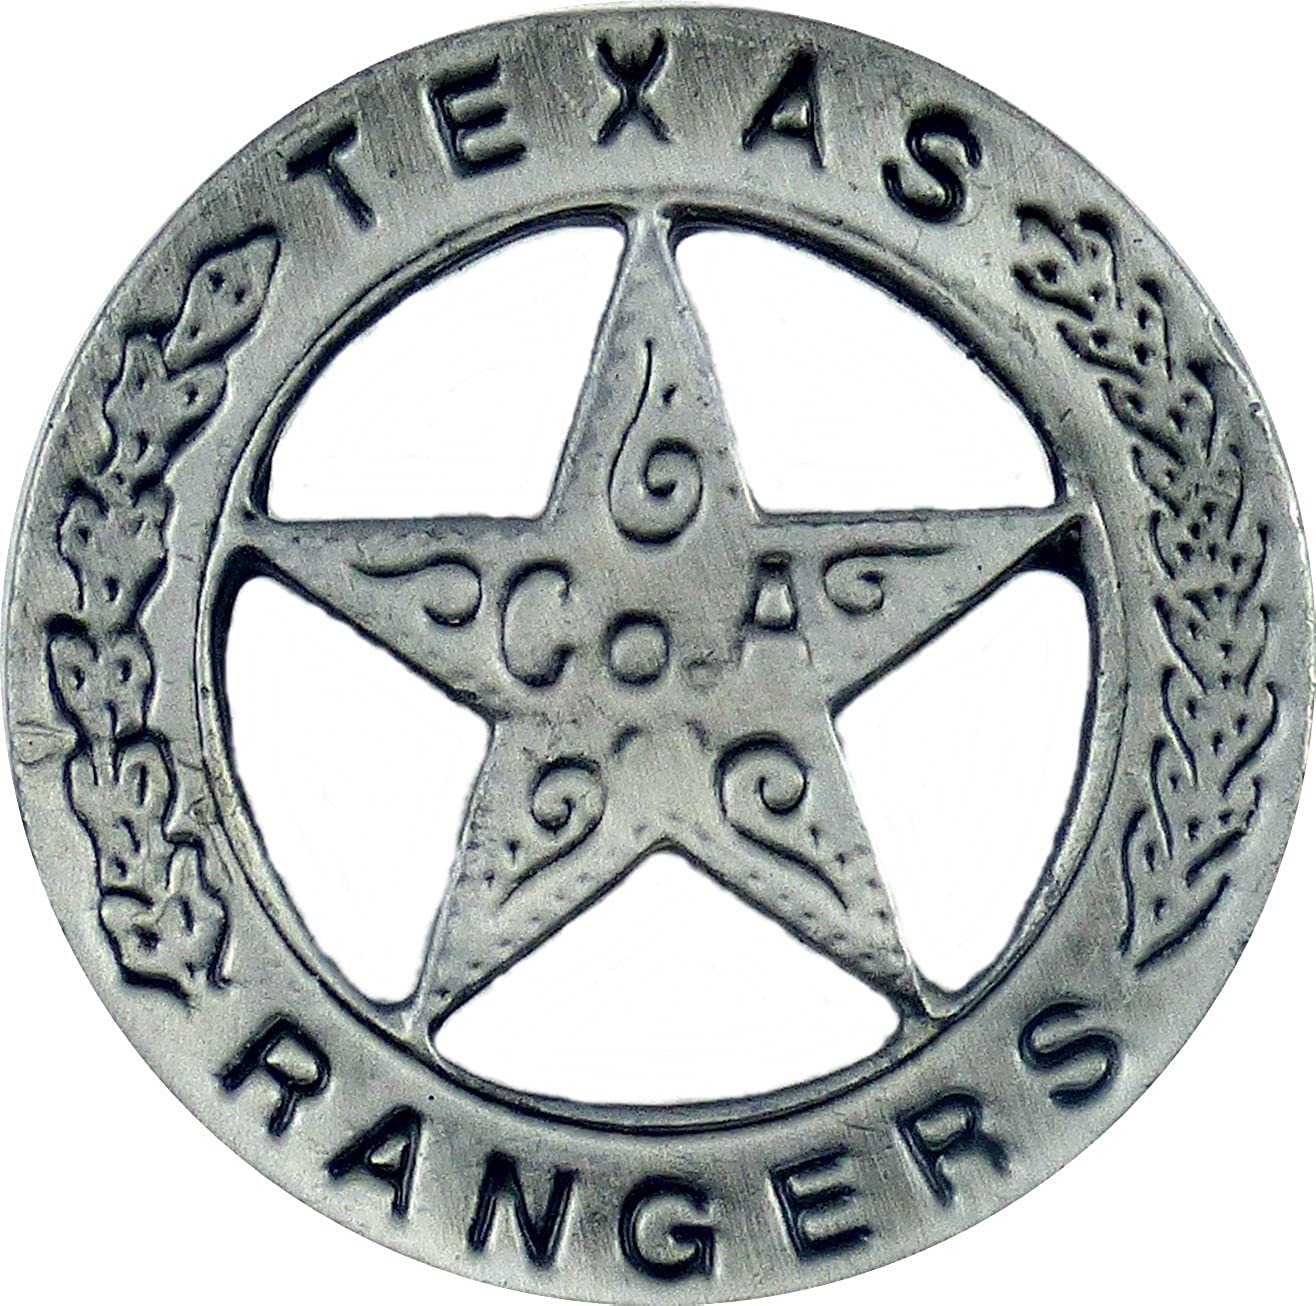 Pin badge Button Texas Rangers CoA Cowboy Western Sheriff star AW-Collection